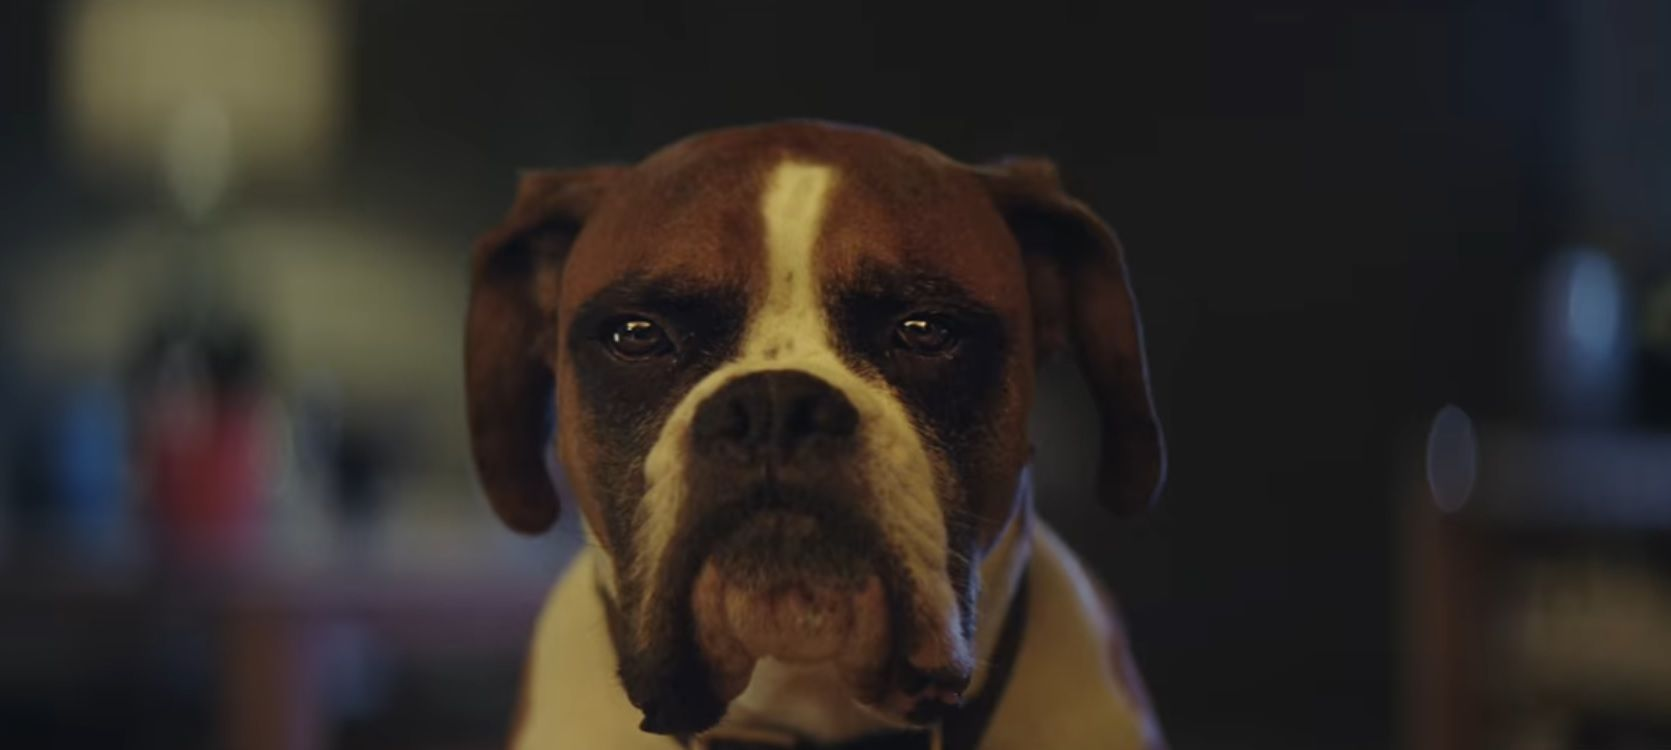 John Lewis Xmas advert 2016 - Buster the Boxer